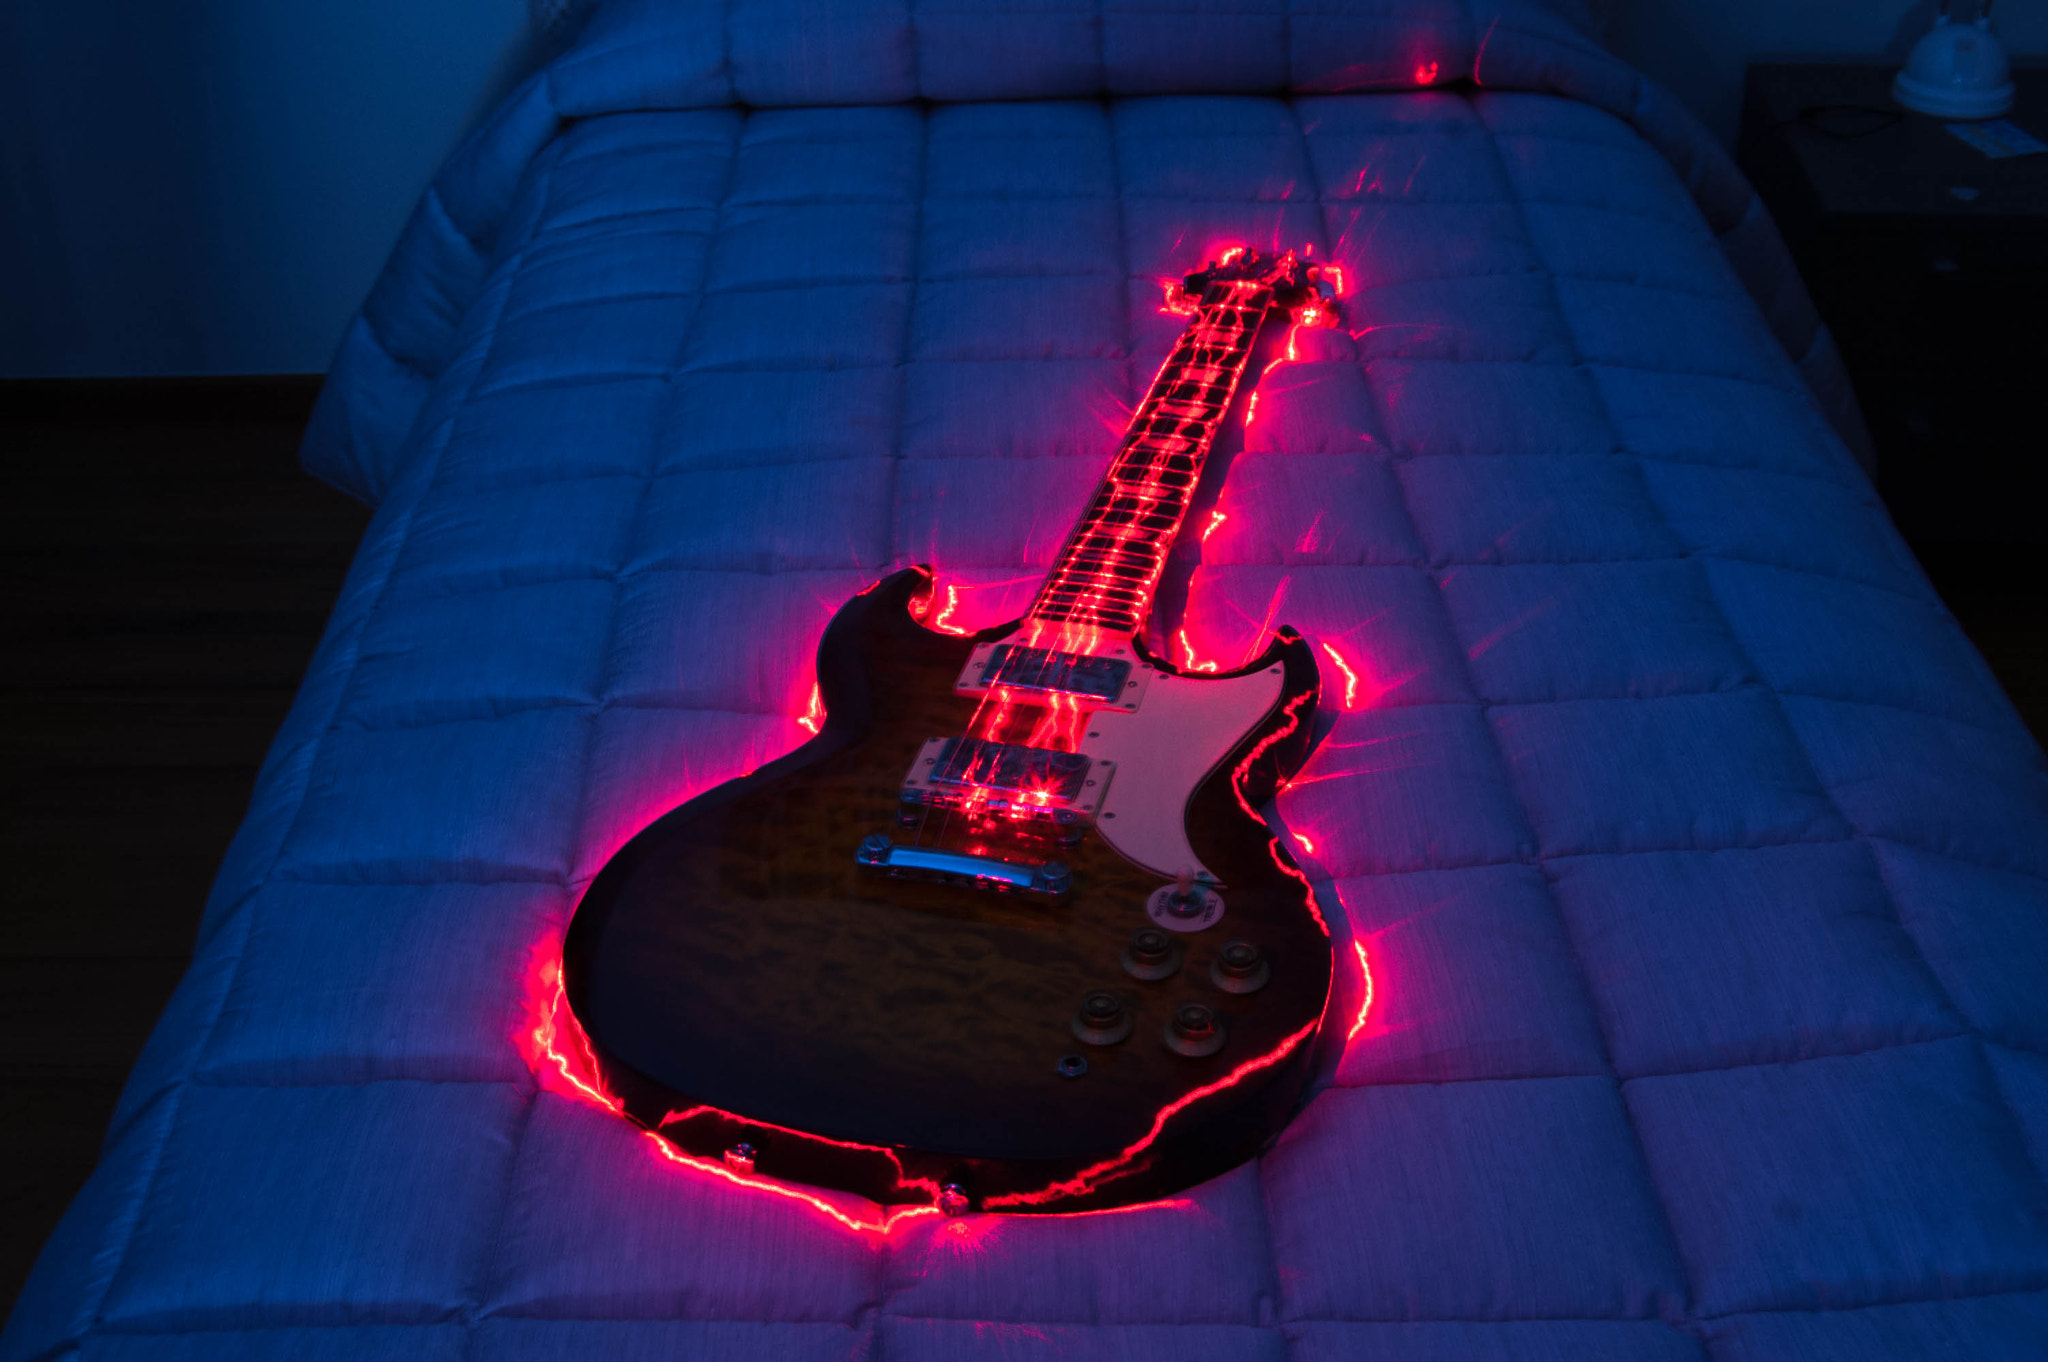 Photograph Long exposure guitar by Andrea Bianchi on 500px